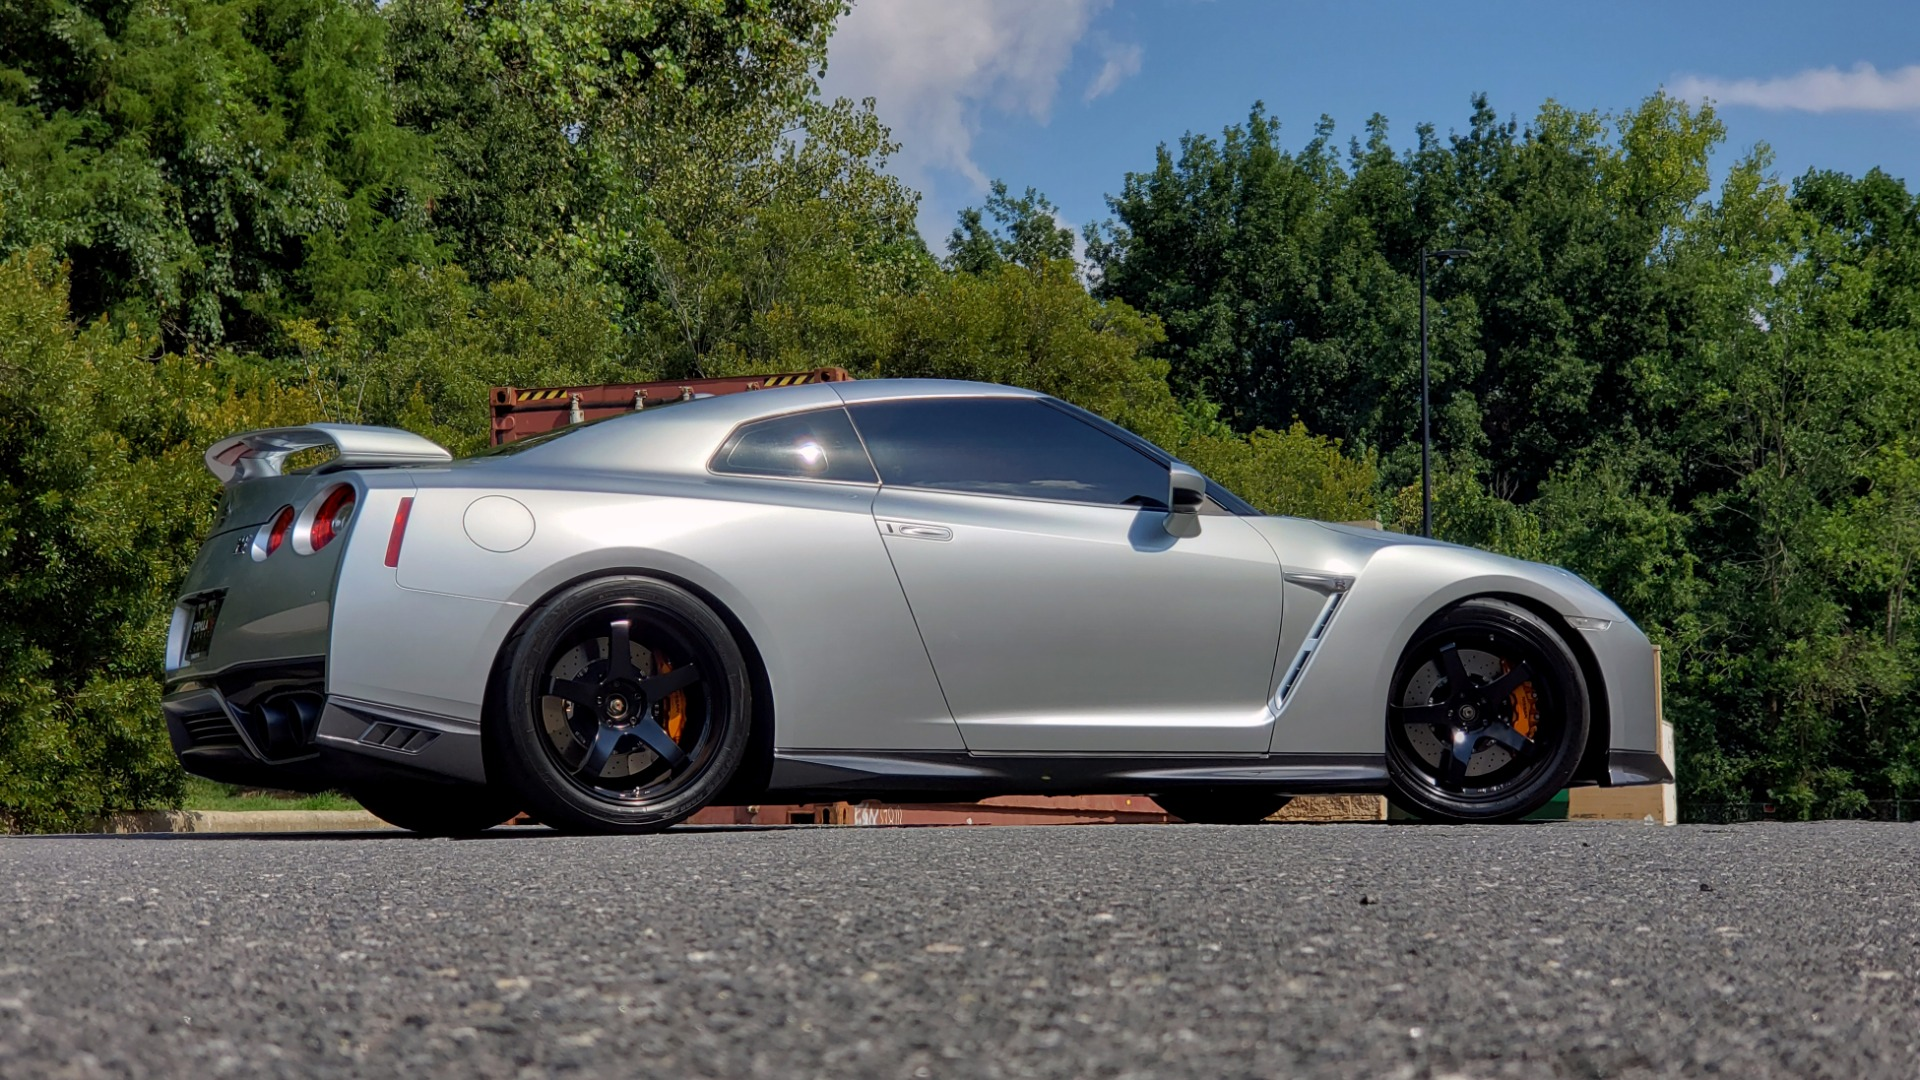 Used 2018 Nissan GT-R PREMIUM / NAV / BOSE / REARVIEW / CUSTOM WHEELS / COIL OVER SHOCKS / TUNED for sale Sold at Formula Imports in Charlotte NC 28227 2